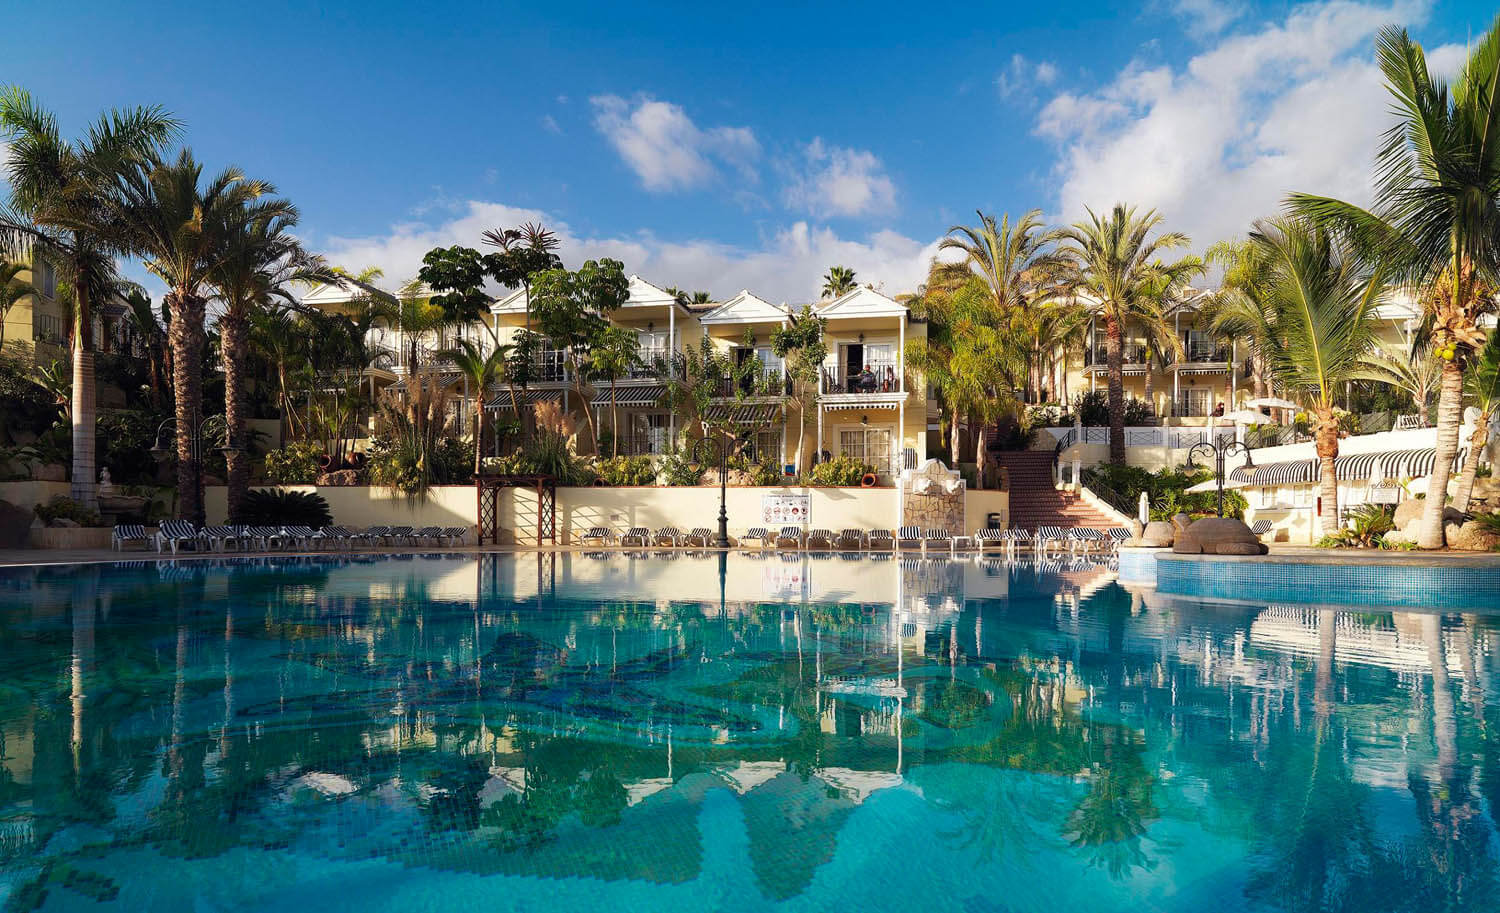 GRAN OASIS RESORT — Tenerife